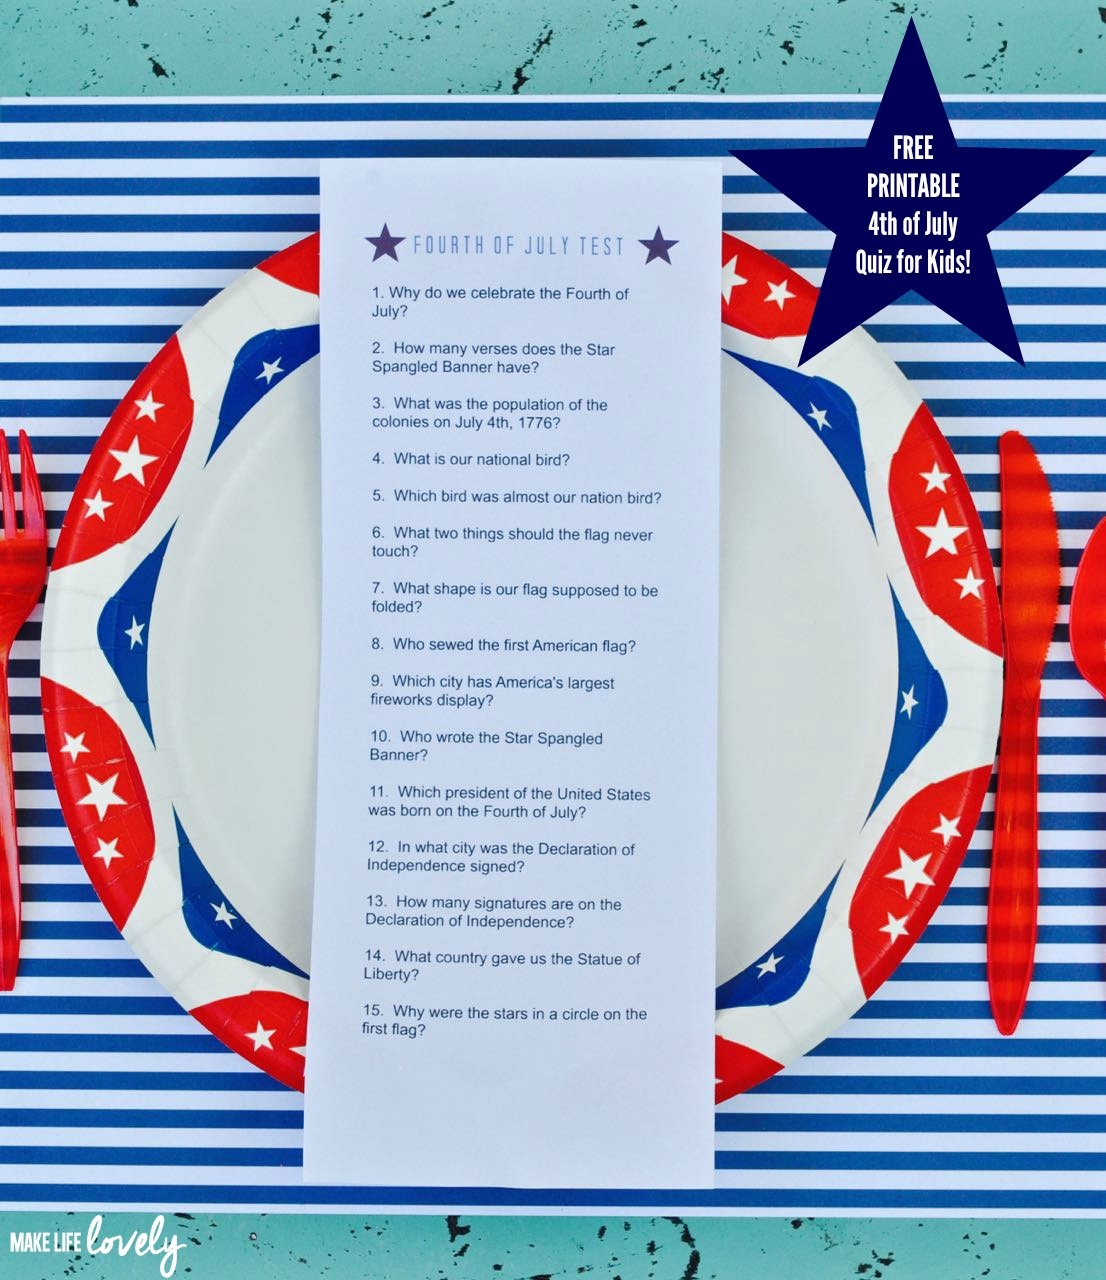 Free Printable Fourth Of July Quiz For Kids - Make Life Lovely - Free Printable 4Th Of July Trivia Questions And Answers